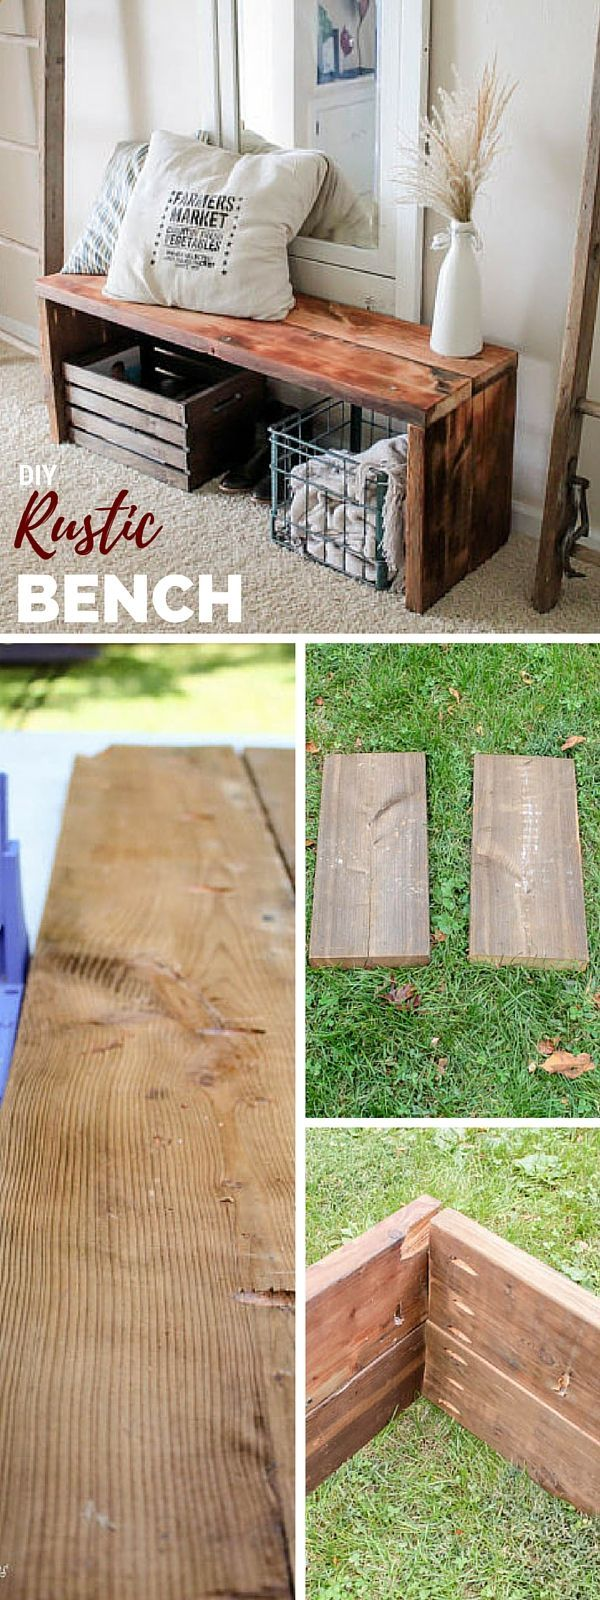 Best 25+ Diy rustic decor ideas on Pinterest